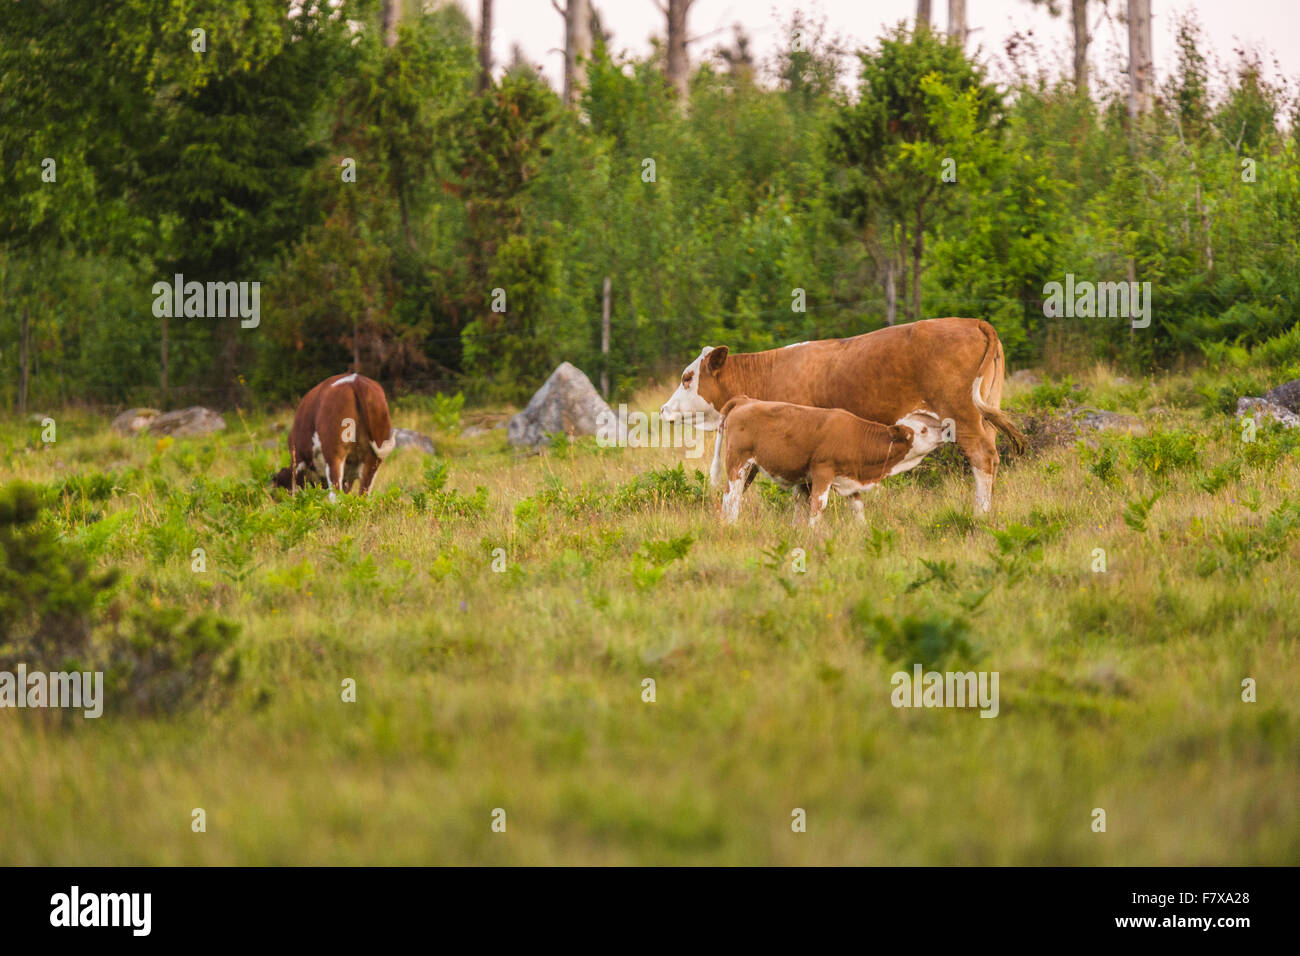 Calf sucking milk from cow - Stock Image